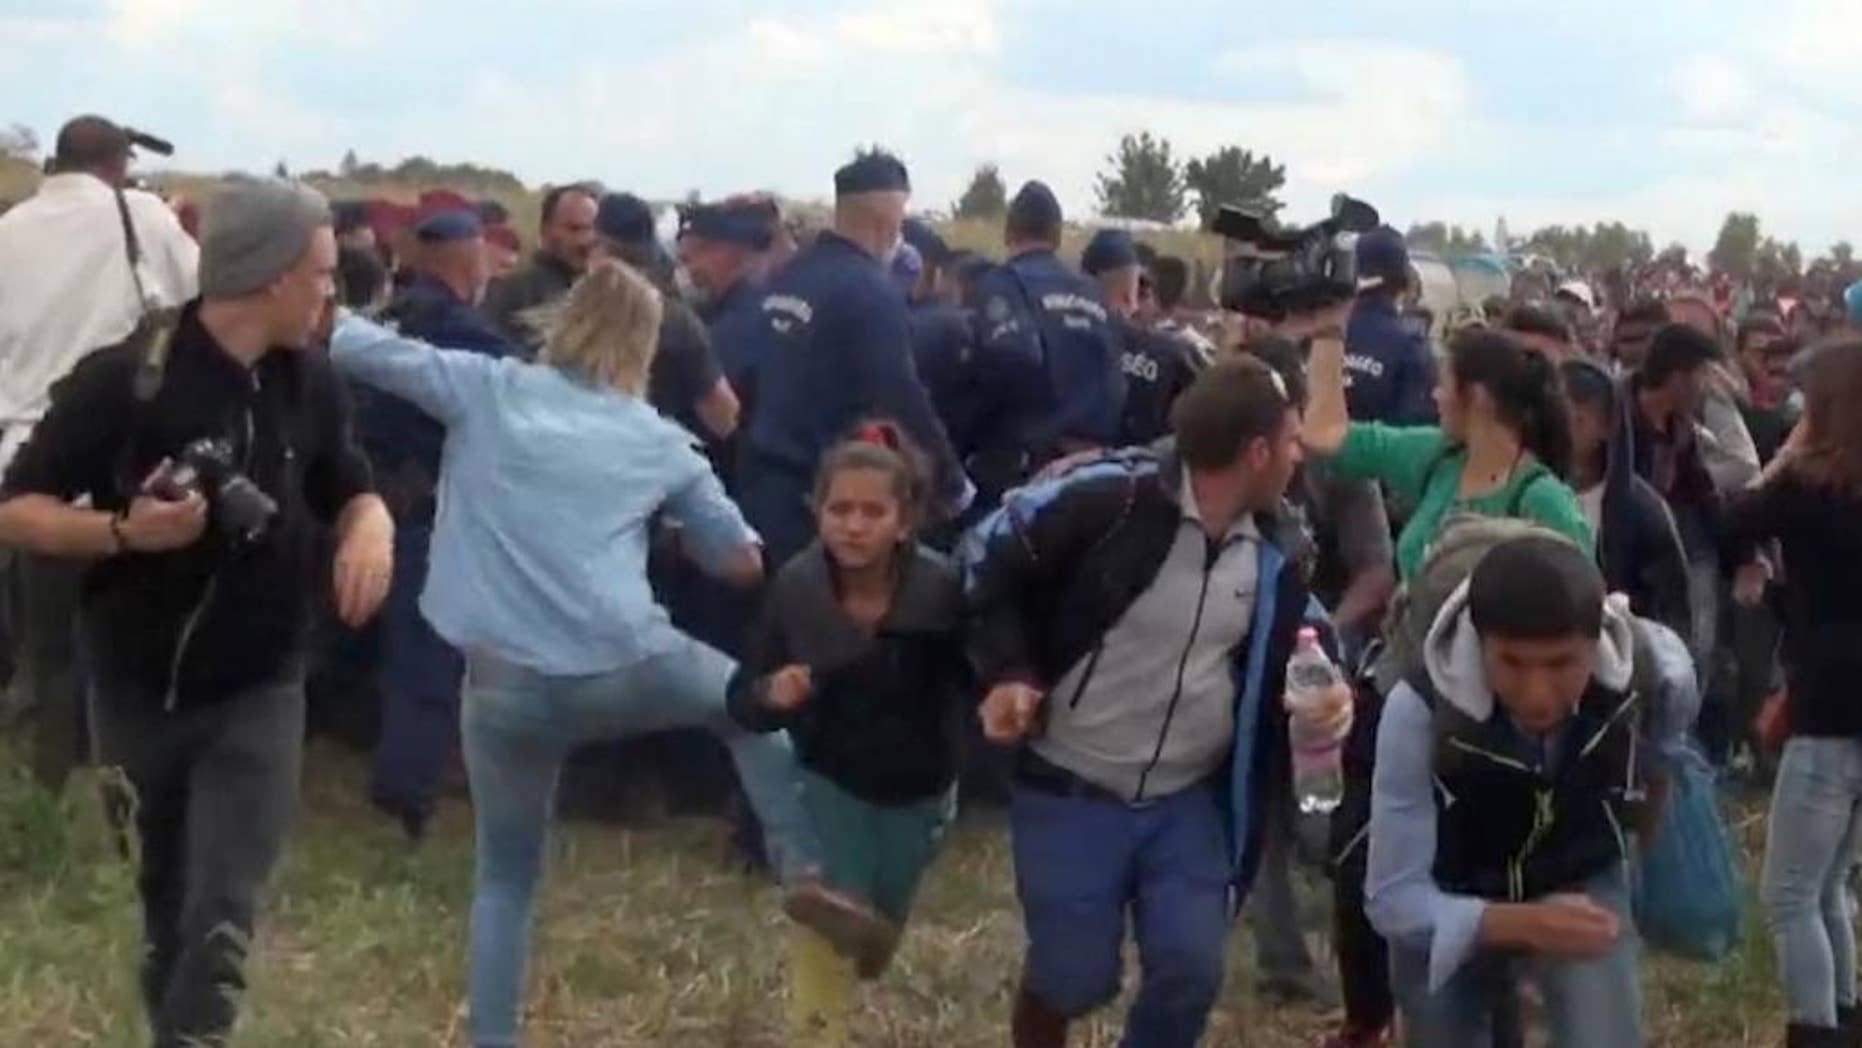 """In this image taken from TV a Hungarian camerawoman, center left in blue, kicks out at a young migrant who had just crossed the border from Serbia  near Roszke Hungary Tuesday Sept. 8, 2015. The camerawoman has been fired after she was caught on video kicking and tripping migrants entering Hungary across the border with Serbia. The N1TV Internet channel said their employee, widely identified in Hungarian media as Petra Laszlo, has been dismissed because she """"behaved unacceptably"""" at a makeshift gathering point where police take migrants immediately after they enter Hungary near the village of Roszke.(Index.Hu. via AP) HUNGARY OUT"""